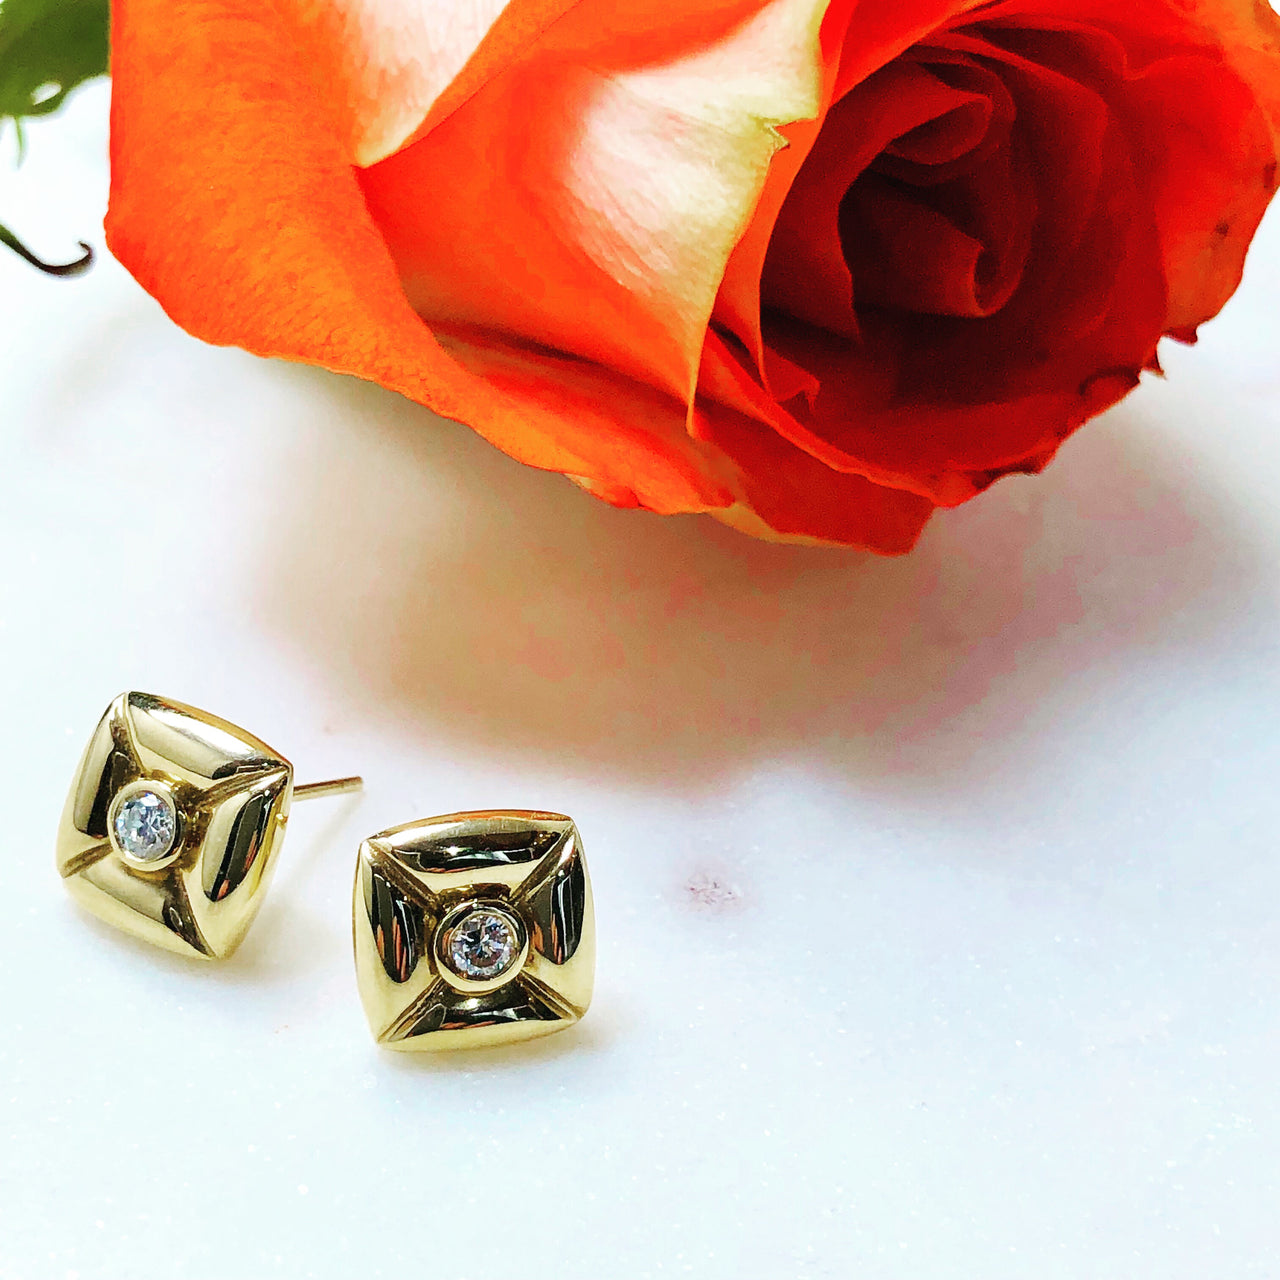 14K Yellow Gold Square Pillow Diamond Stud Earrings.